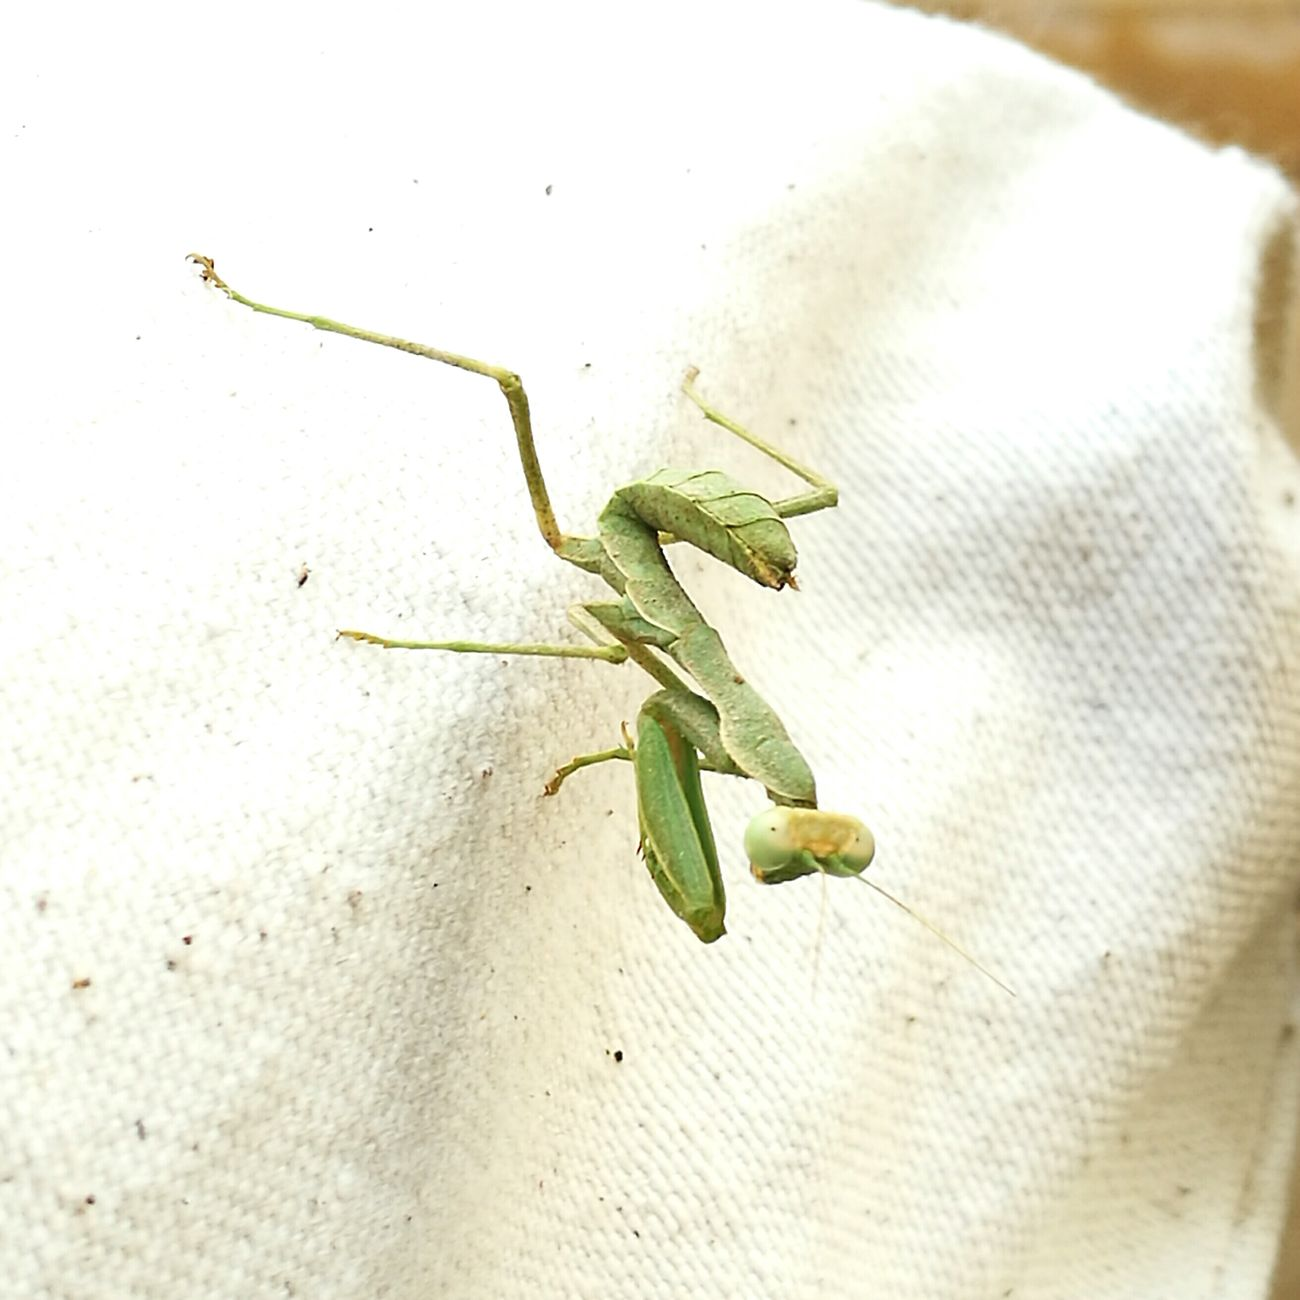 Insectphotography Insect Green Camouflage Grasshopper Nature Naturalcolor